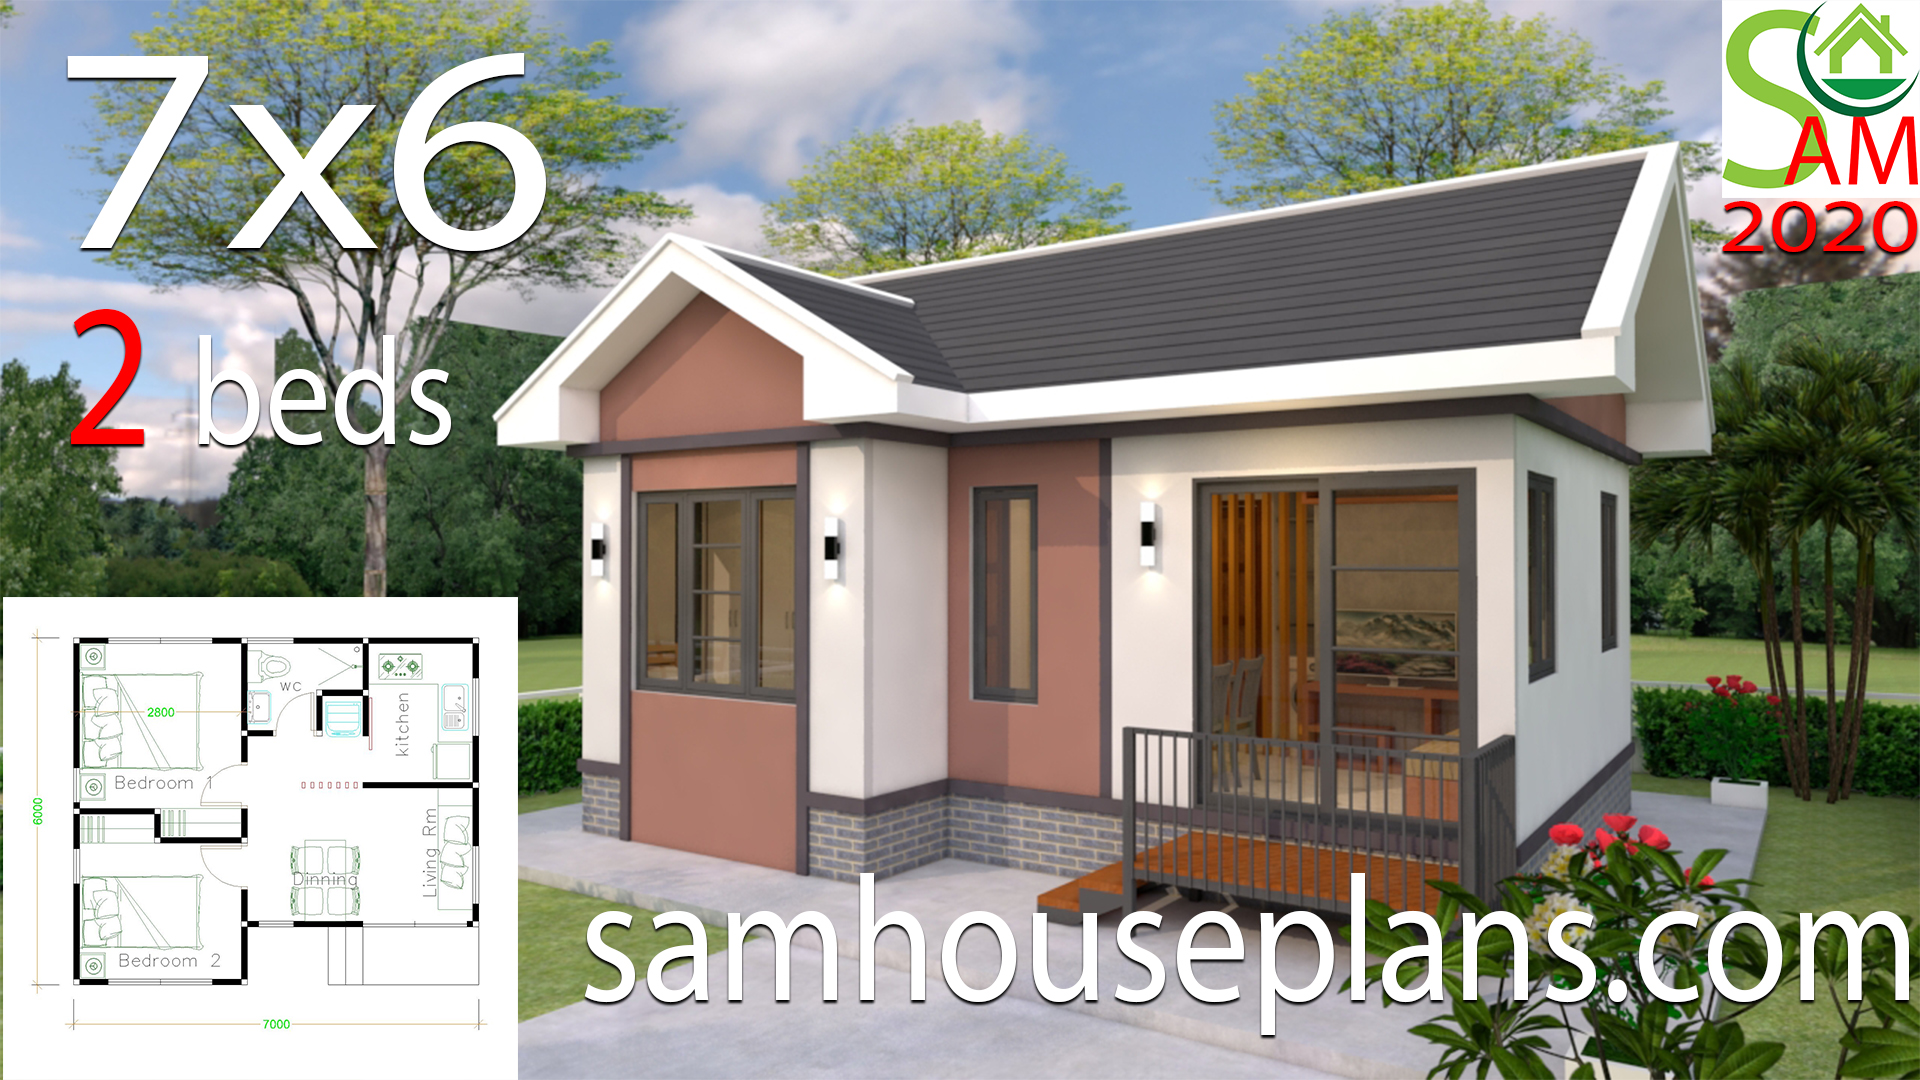 Small House Plans Design 7x6 With 2 Bedrooms Gable Roof Samhouseplans